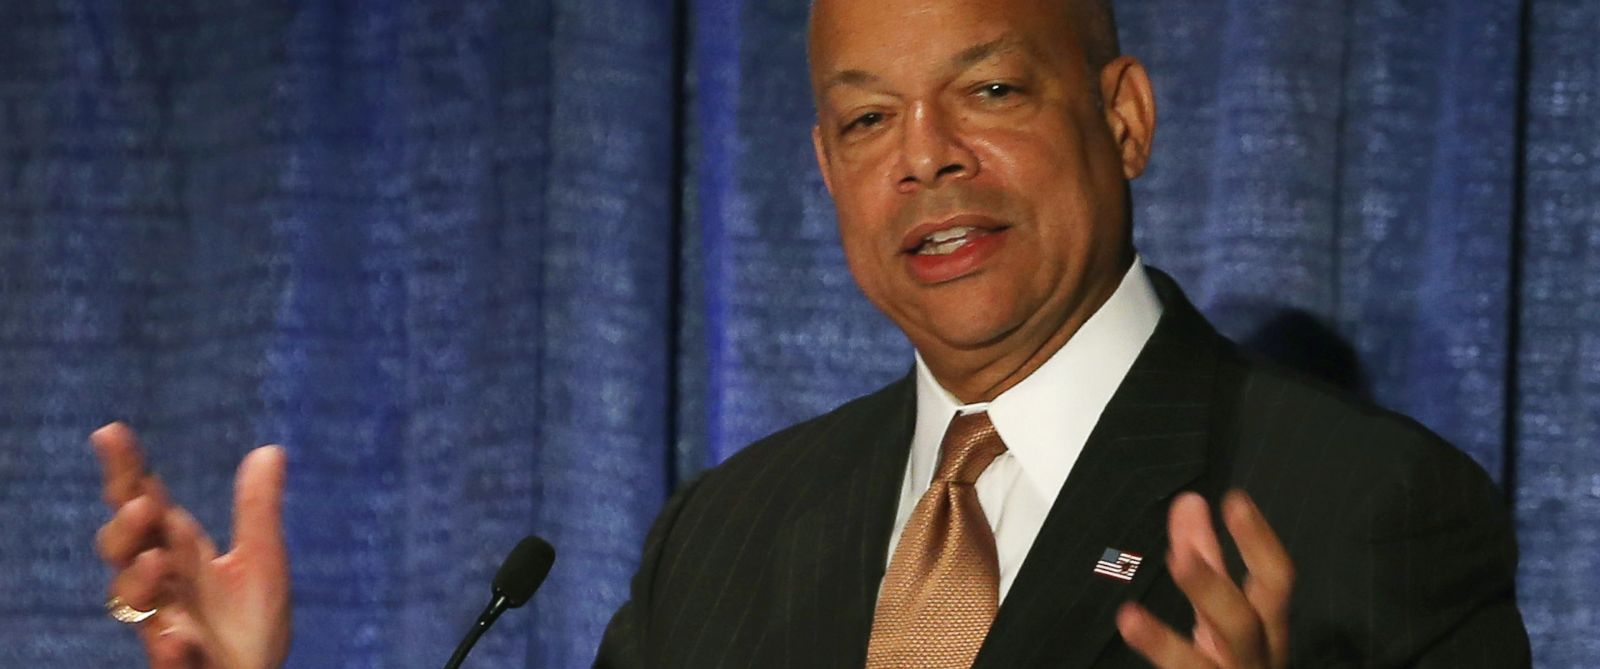 PHOTO: Homeland Security Secretary Jeh Johnson speaks during the Association of the United States Army conference at the Walter E. Washington Convention Center Oct. 14, 2014, file photo in Washington, DC.